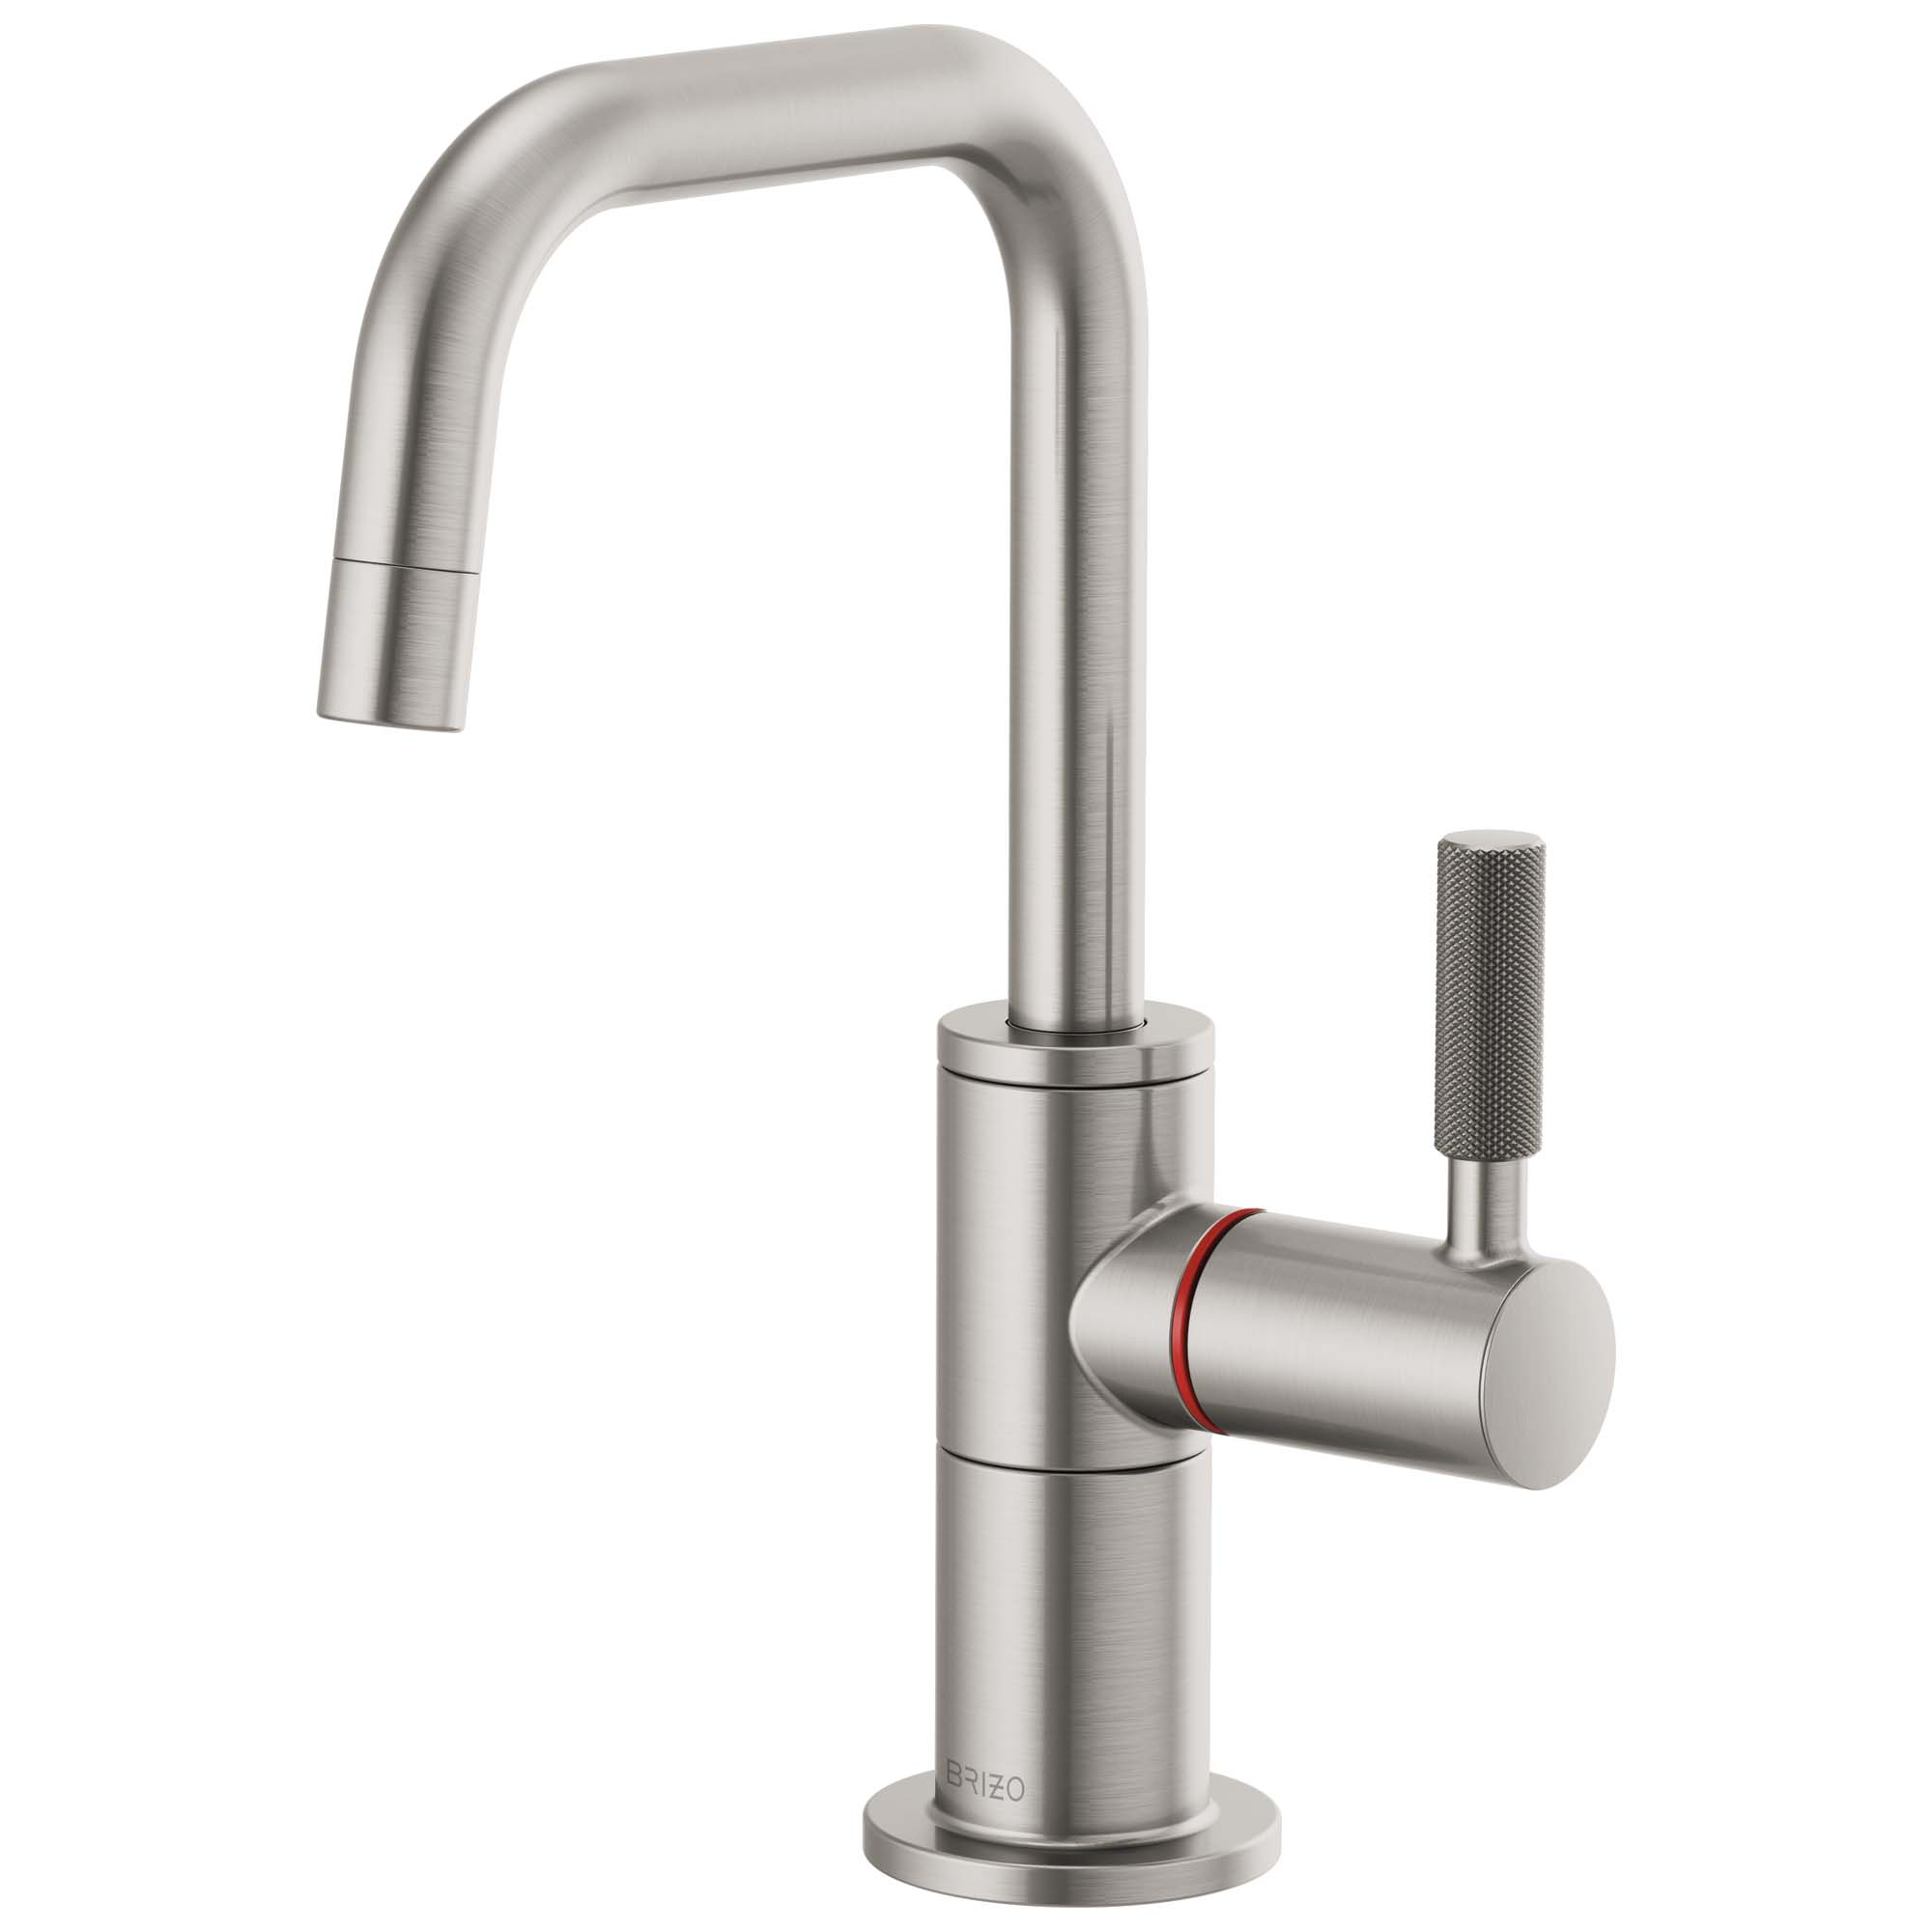 Brizo 61353LF-H-SS Litze Instant Hot Faucet with Square Spout and Knurled Handle - Stainless